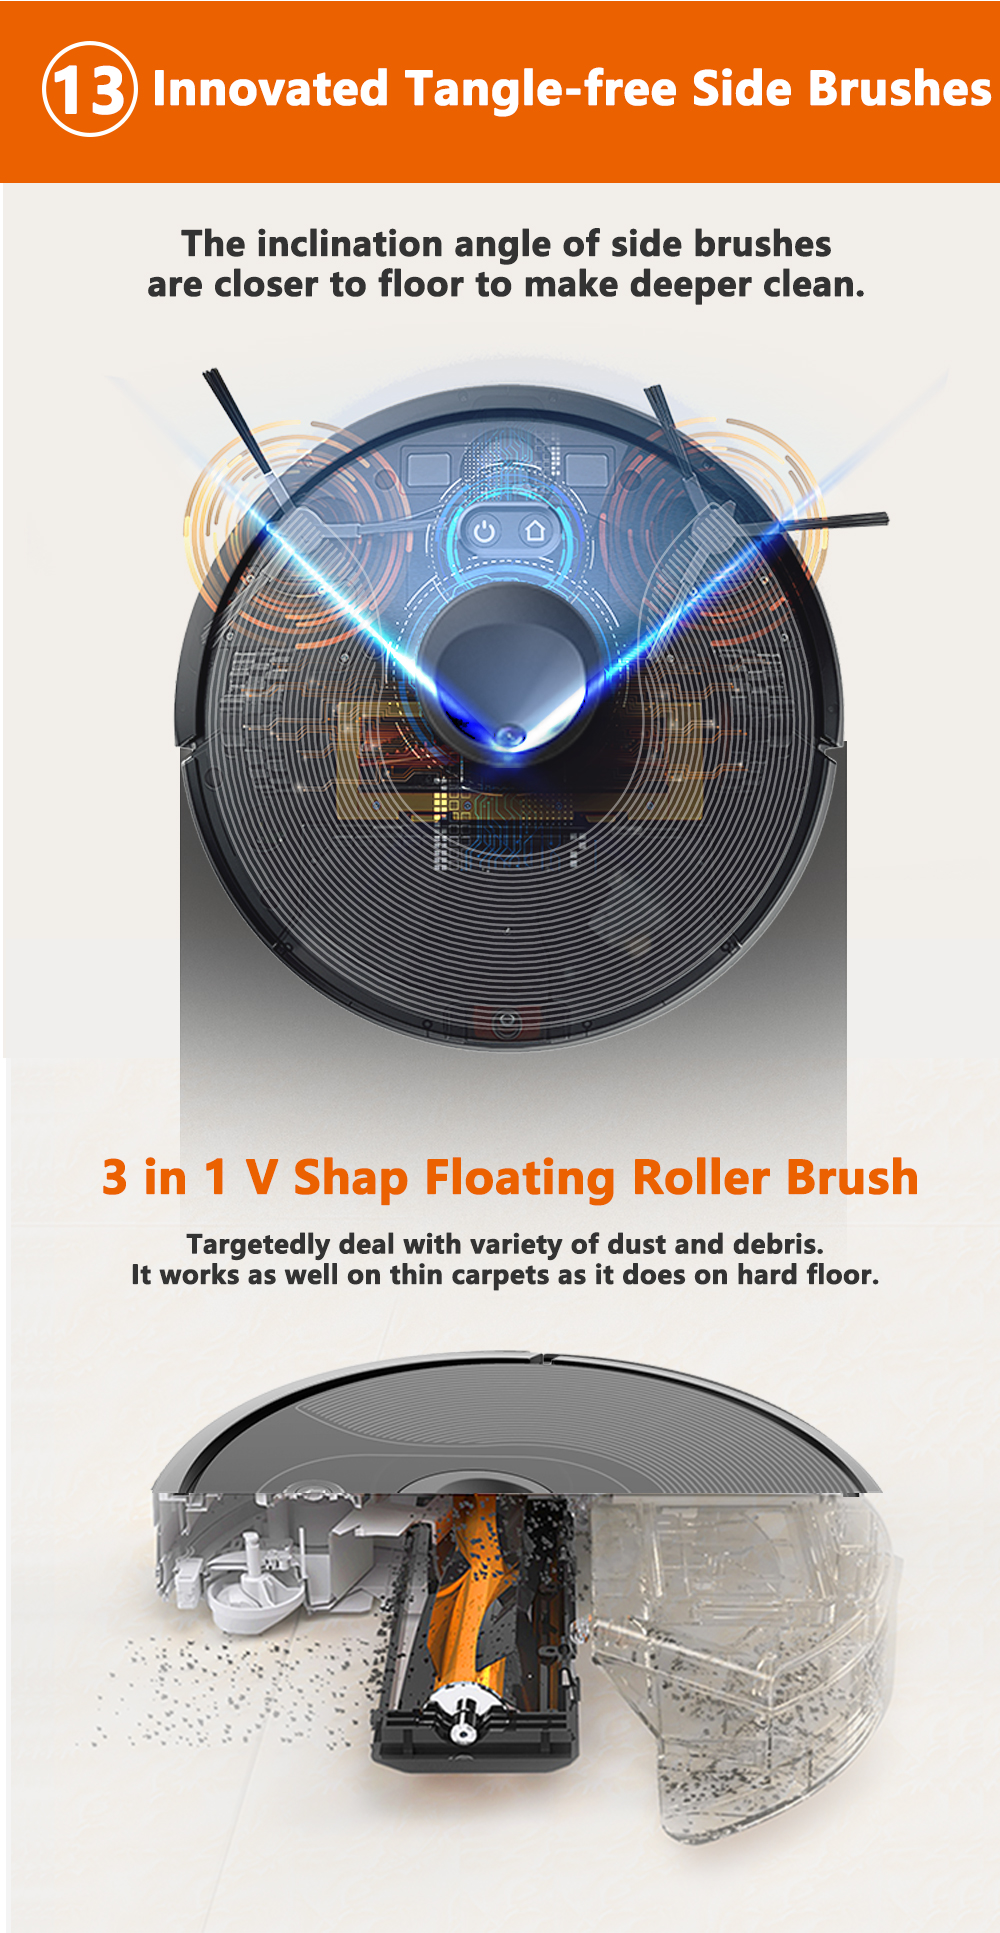 H27de6e44f5254bde9e4e190281d68fddj ABIR X6 Robot Vacuum Cleaner with Camera Navigation,WIFI APP controlled,Breakpoint Continue Cleaning,Draw Cleaning Area,Save Map